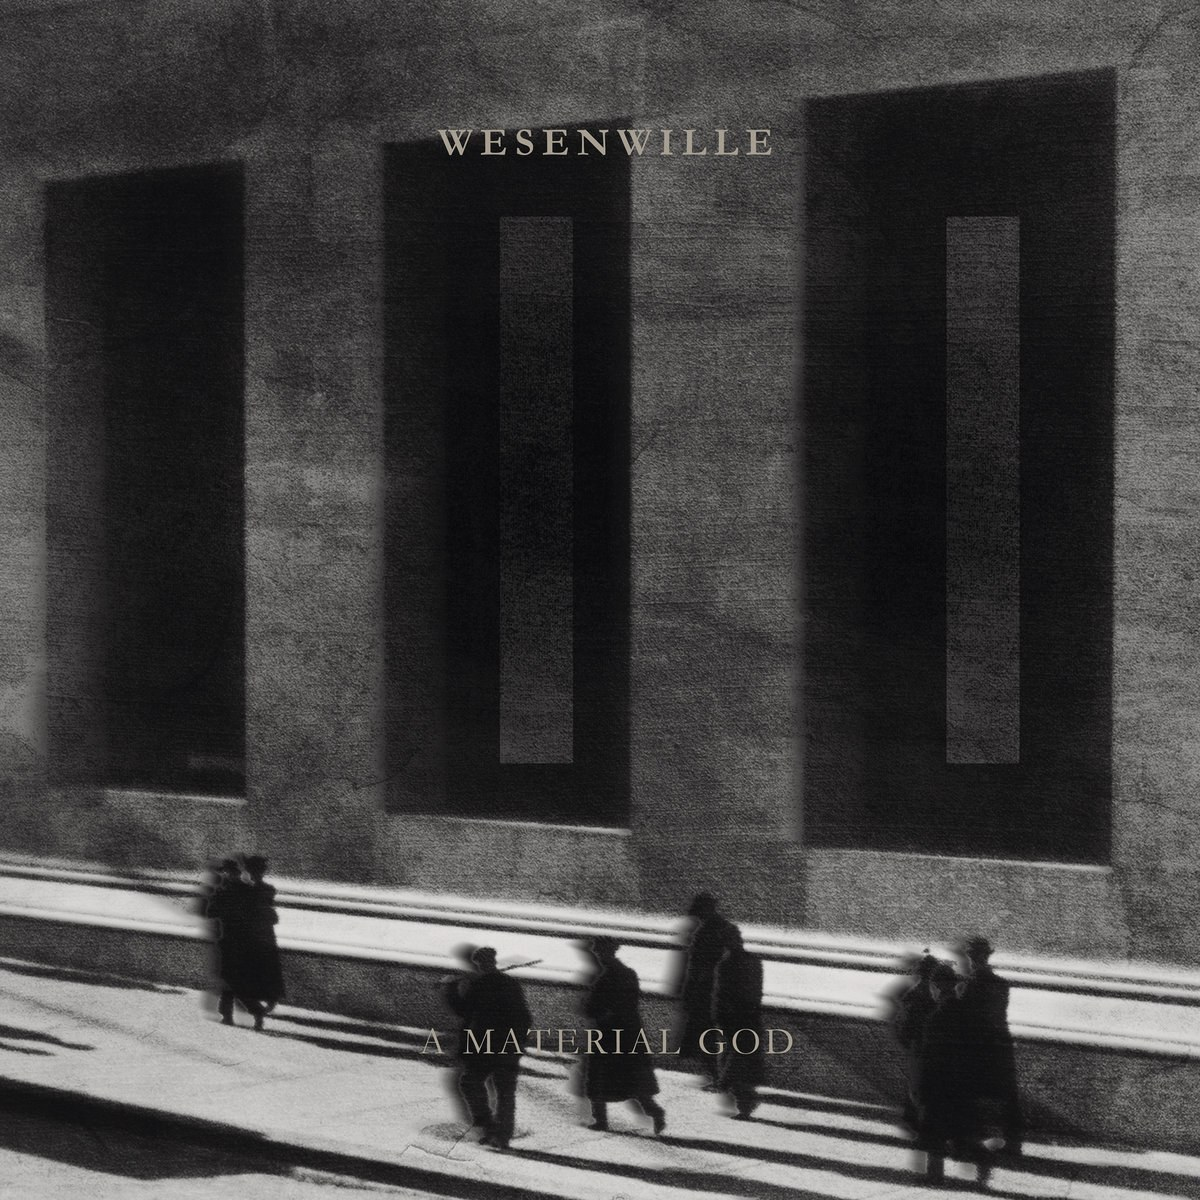 Reviews for Wesenwille - Ii: A Material God